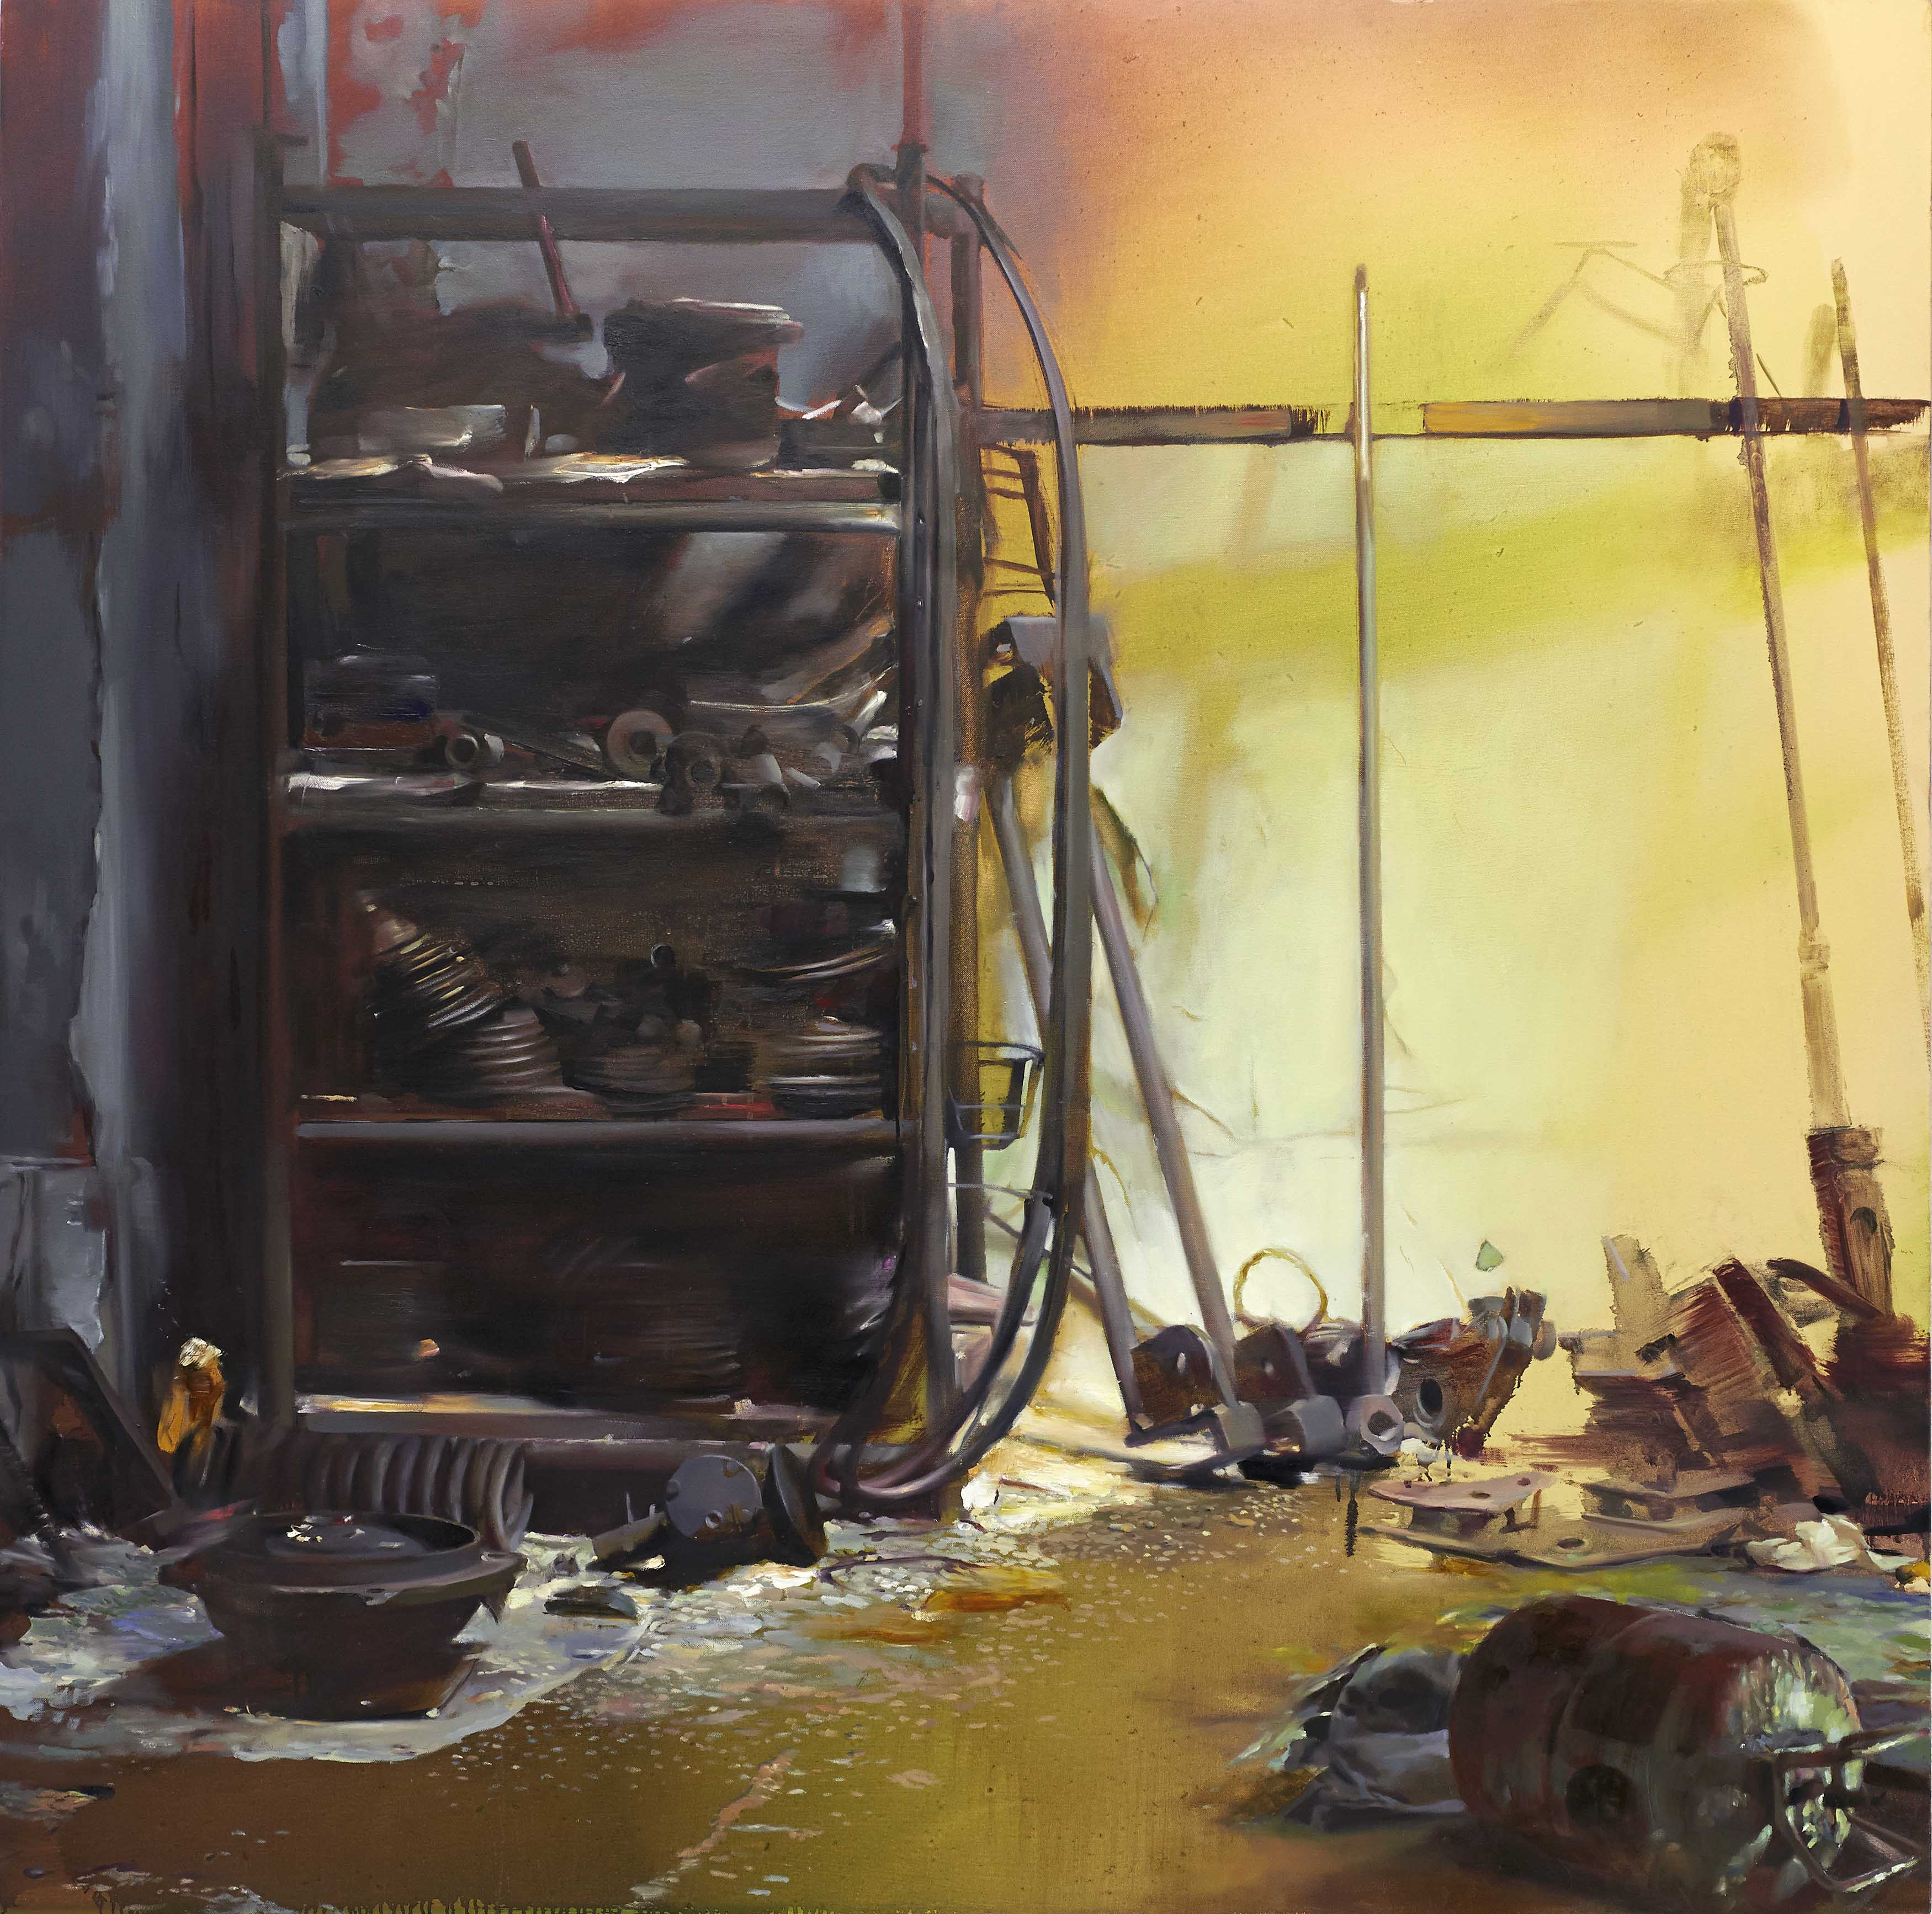 02 .Storage ,150 x 150 cm, oil on canvas